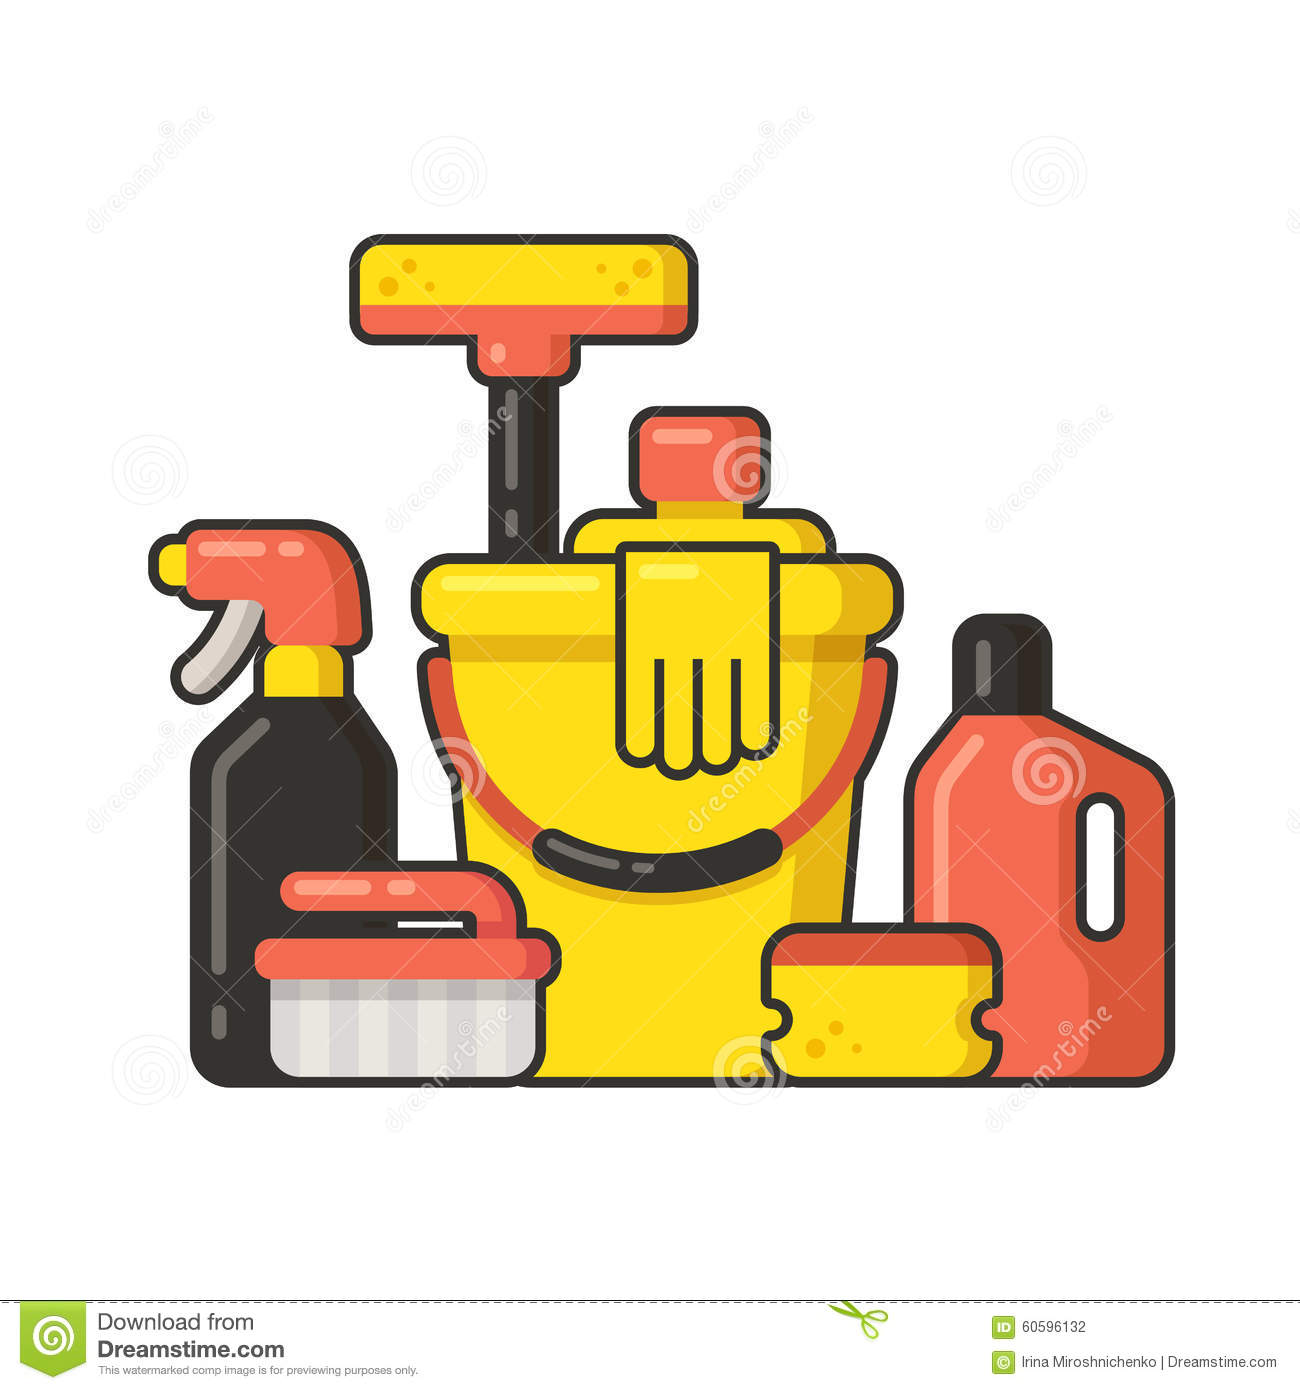 Cleaning Supplies Stock Vector - Image: 60596132